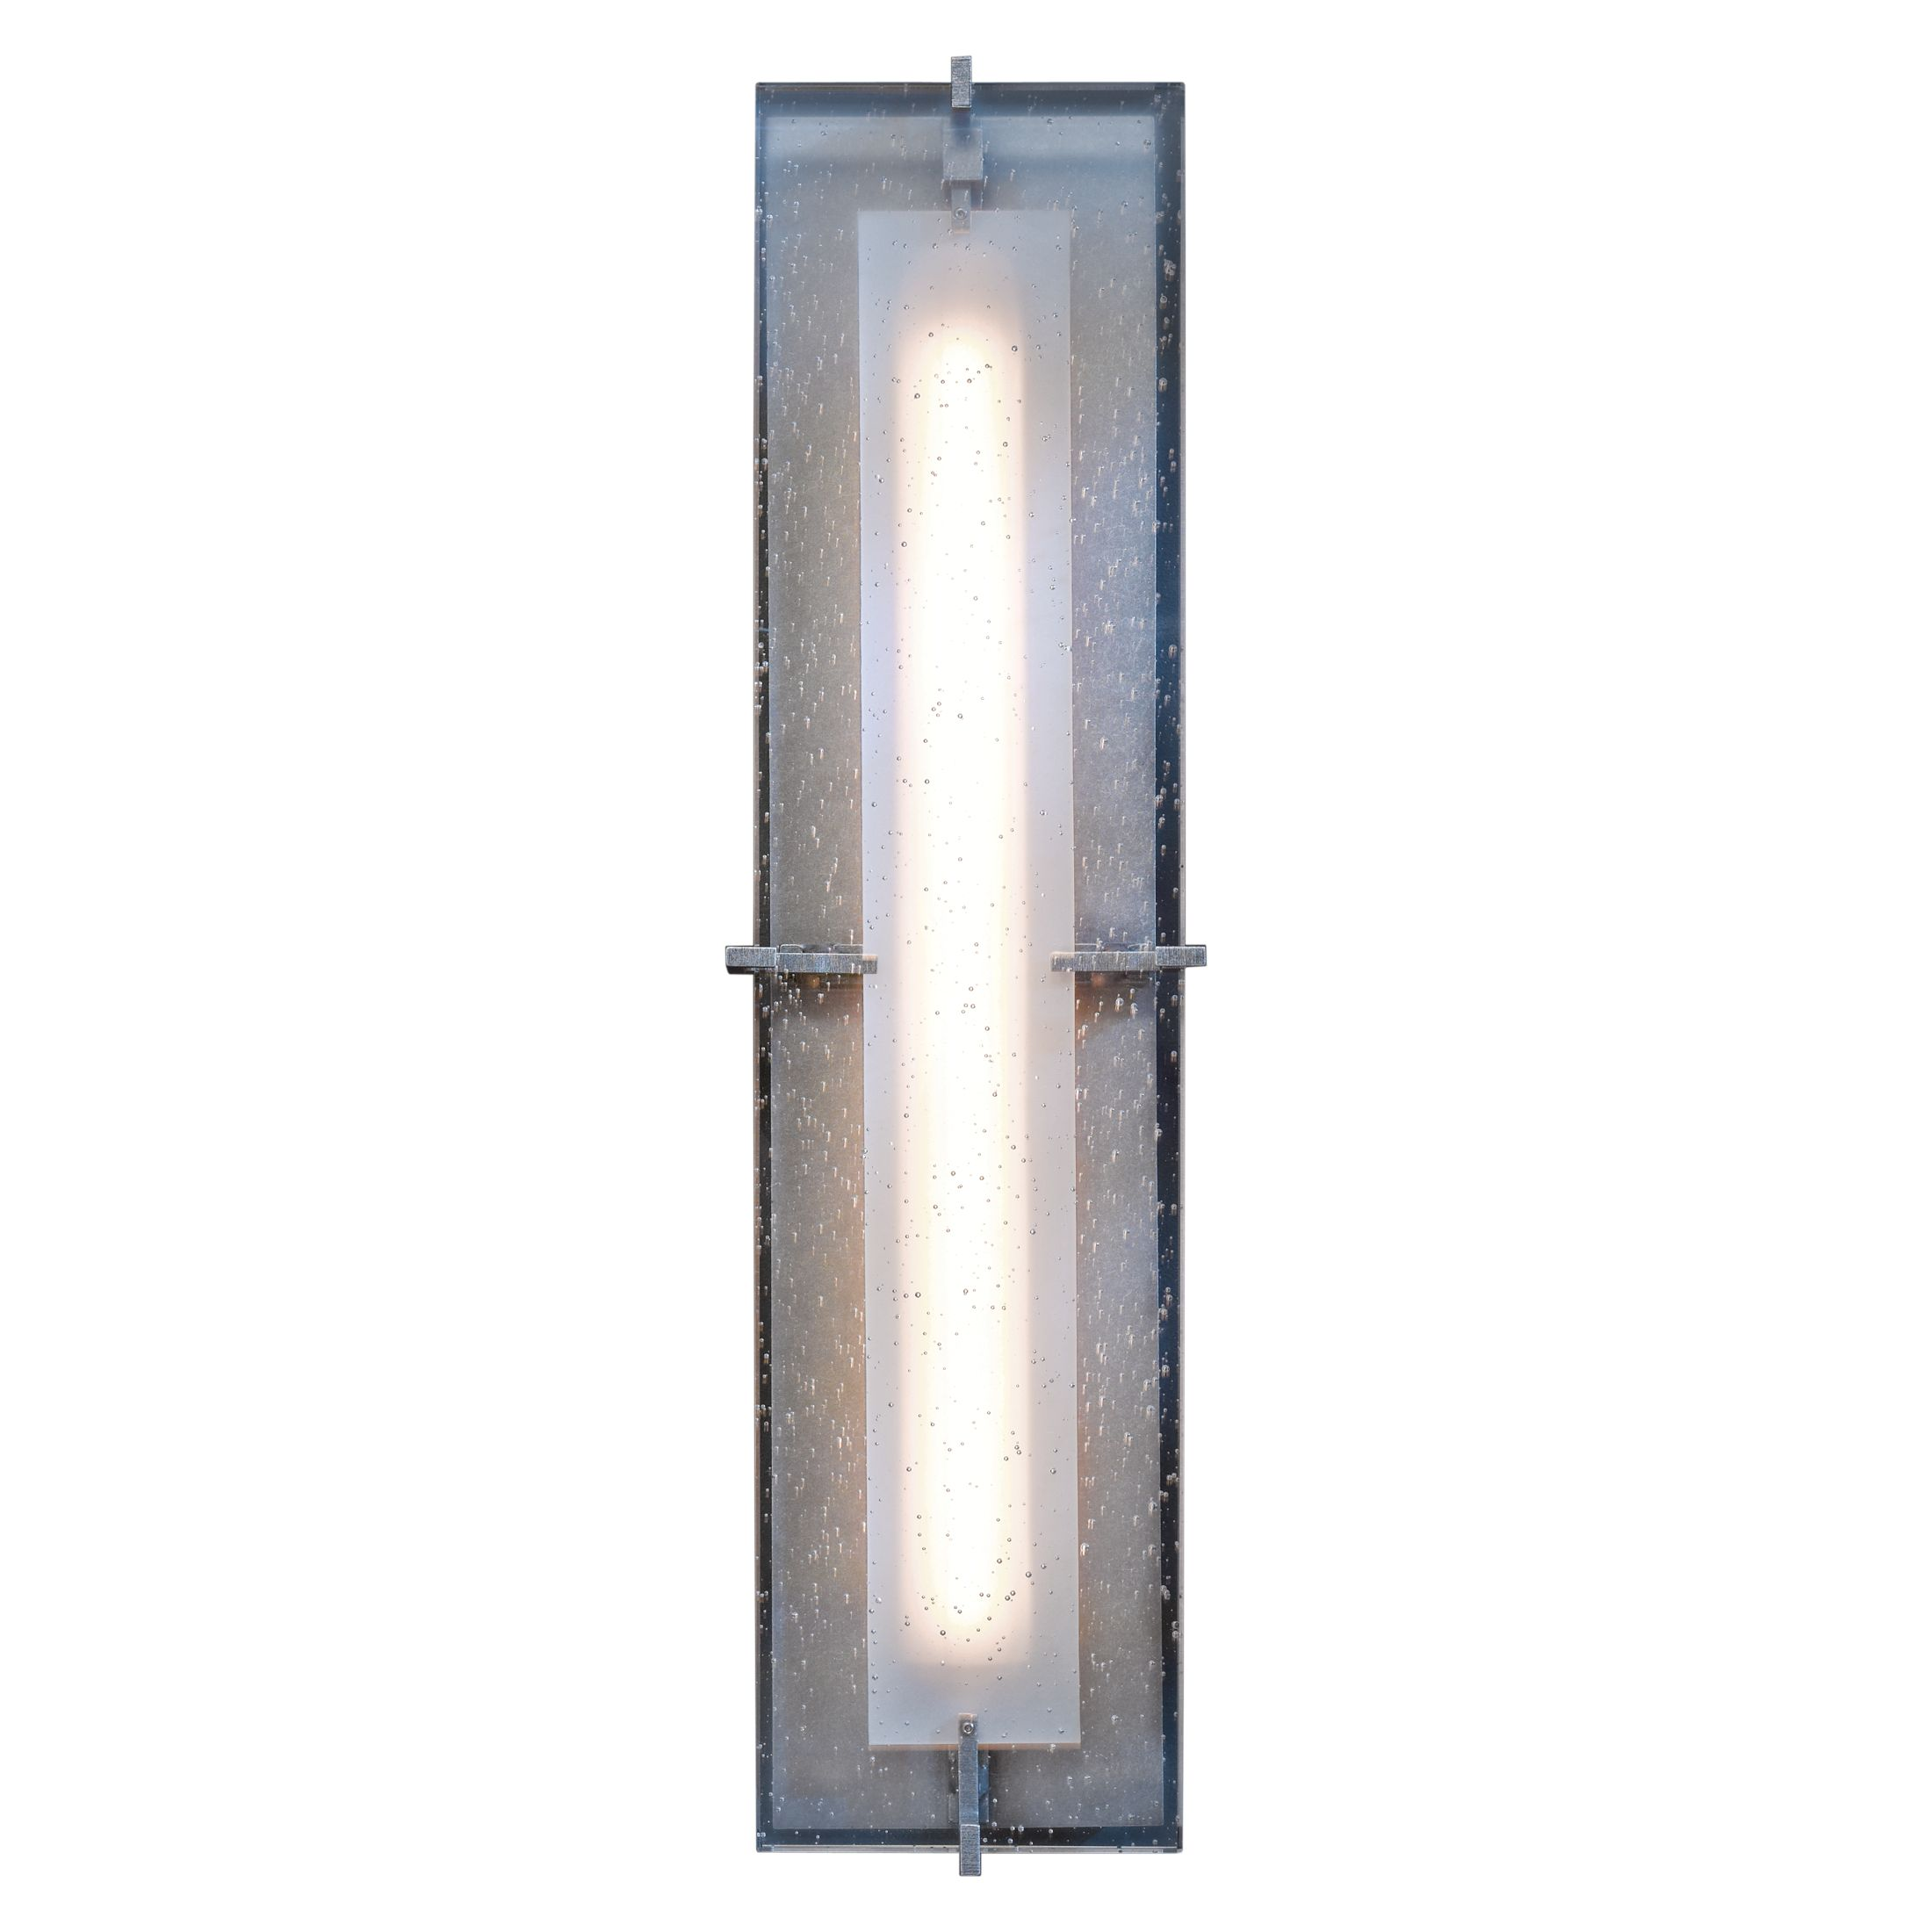 Thumbnail for Ethos Large LED Outdoor Sconce